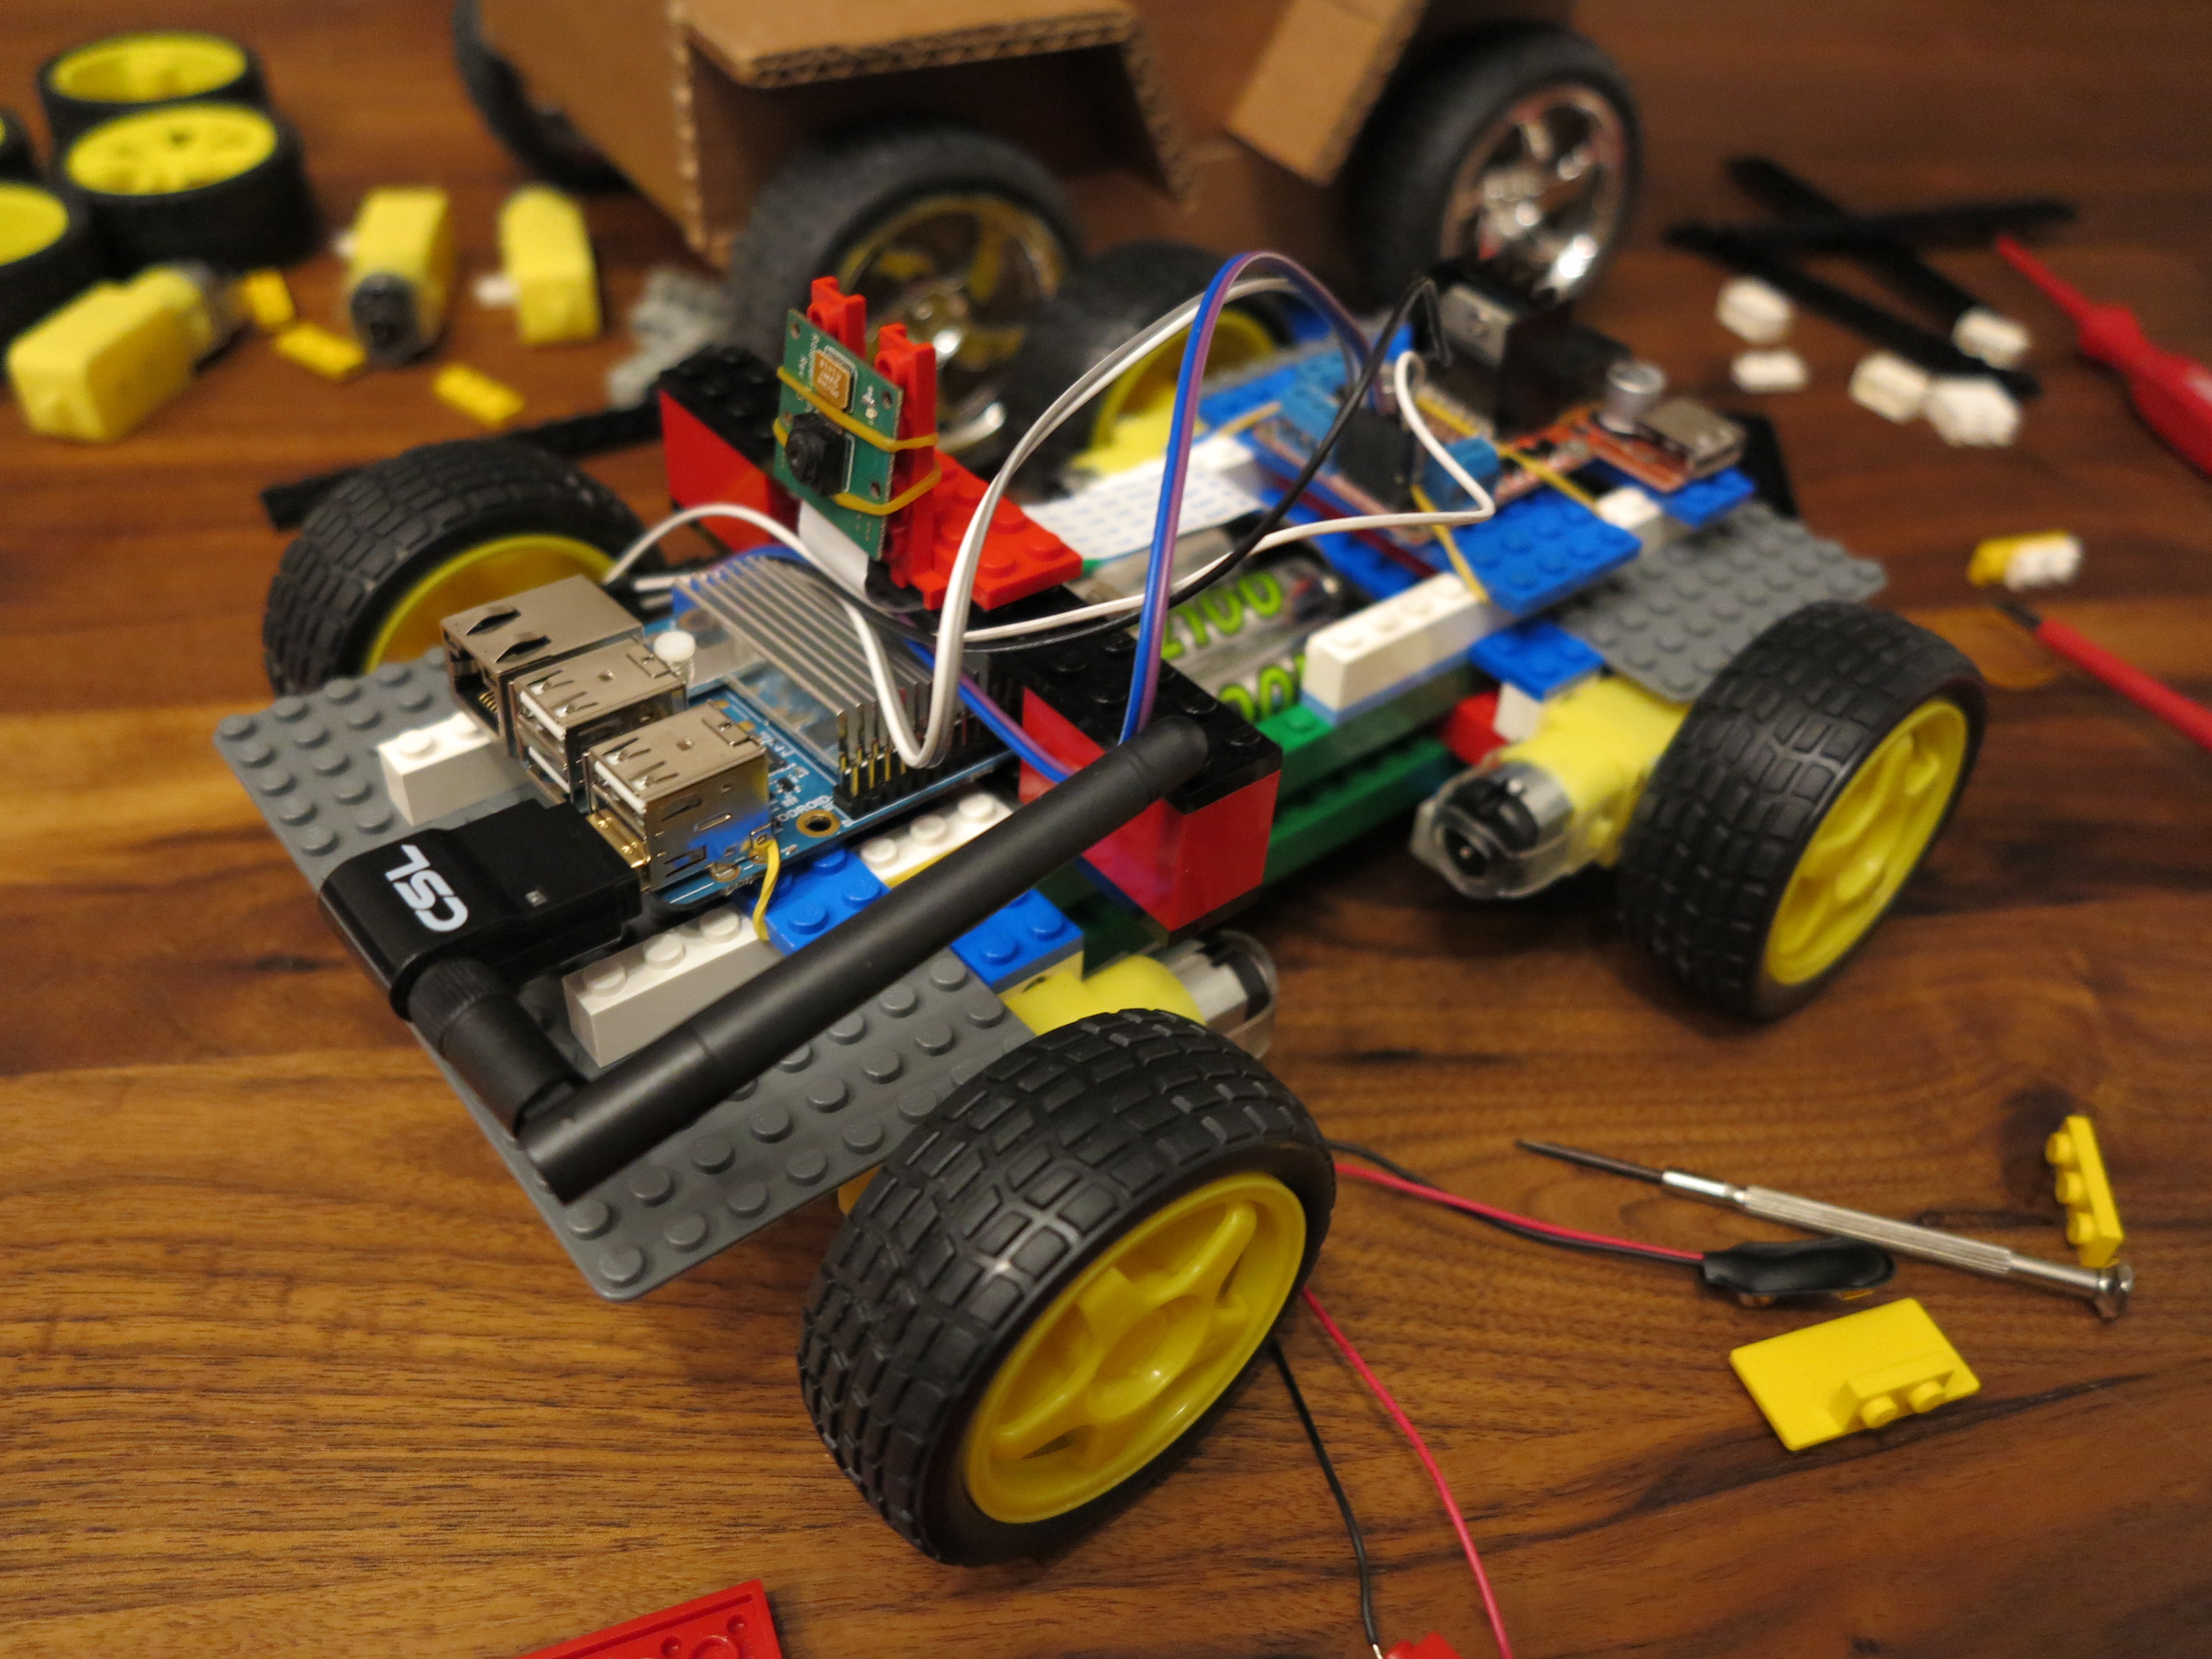 Remote Controlled Robot Build Of Lego Bricks With A Raspberry Pi Stepper Control Car Brick Wheel Prototyp